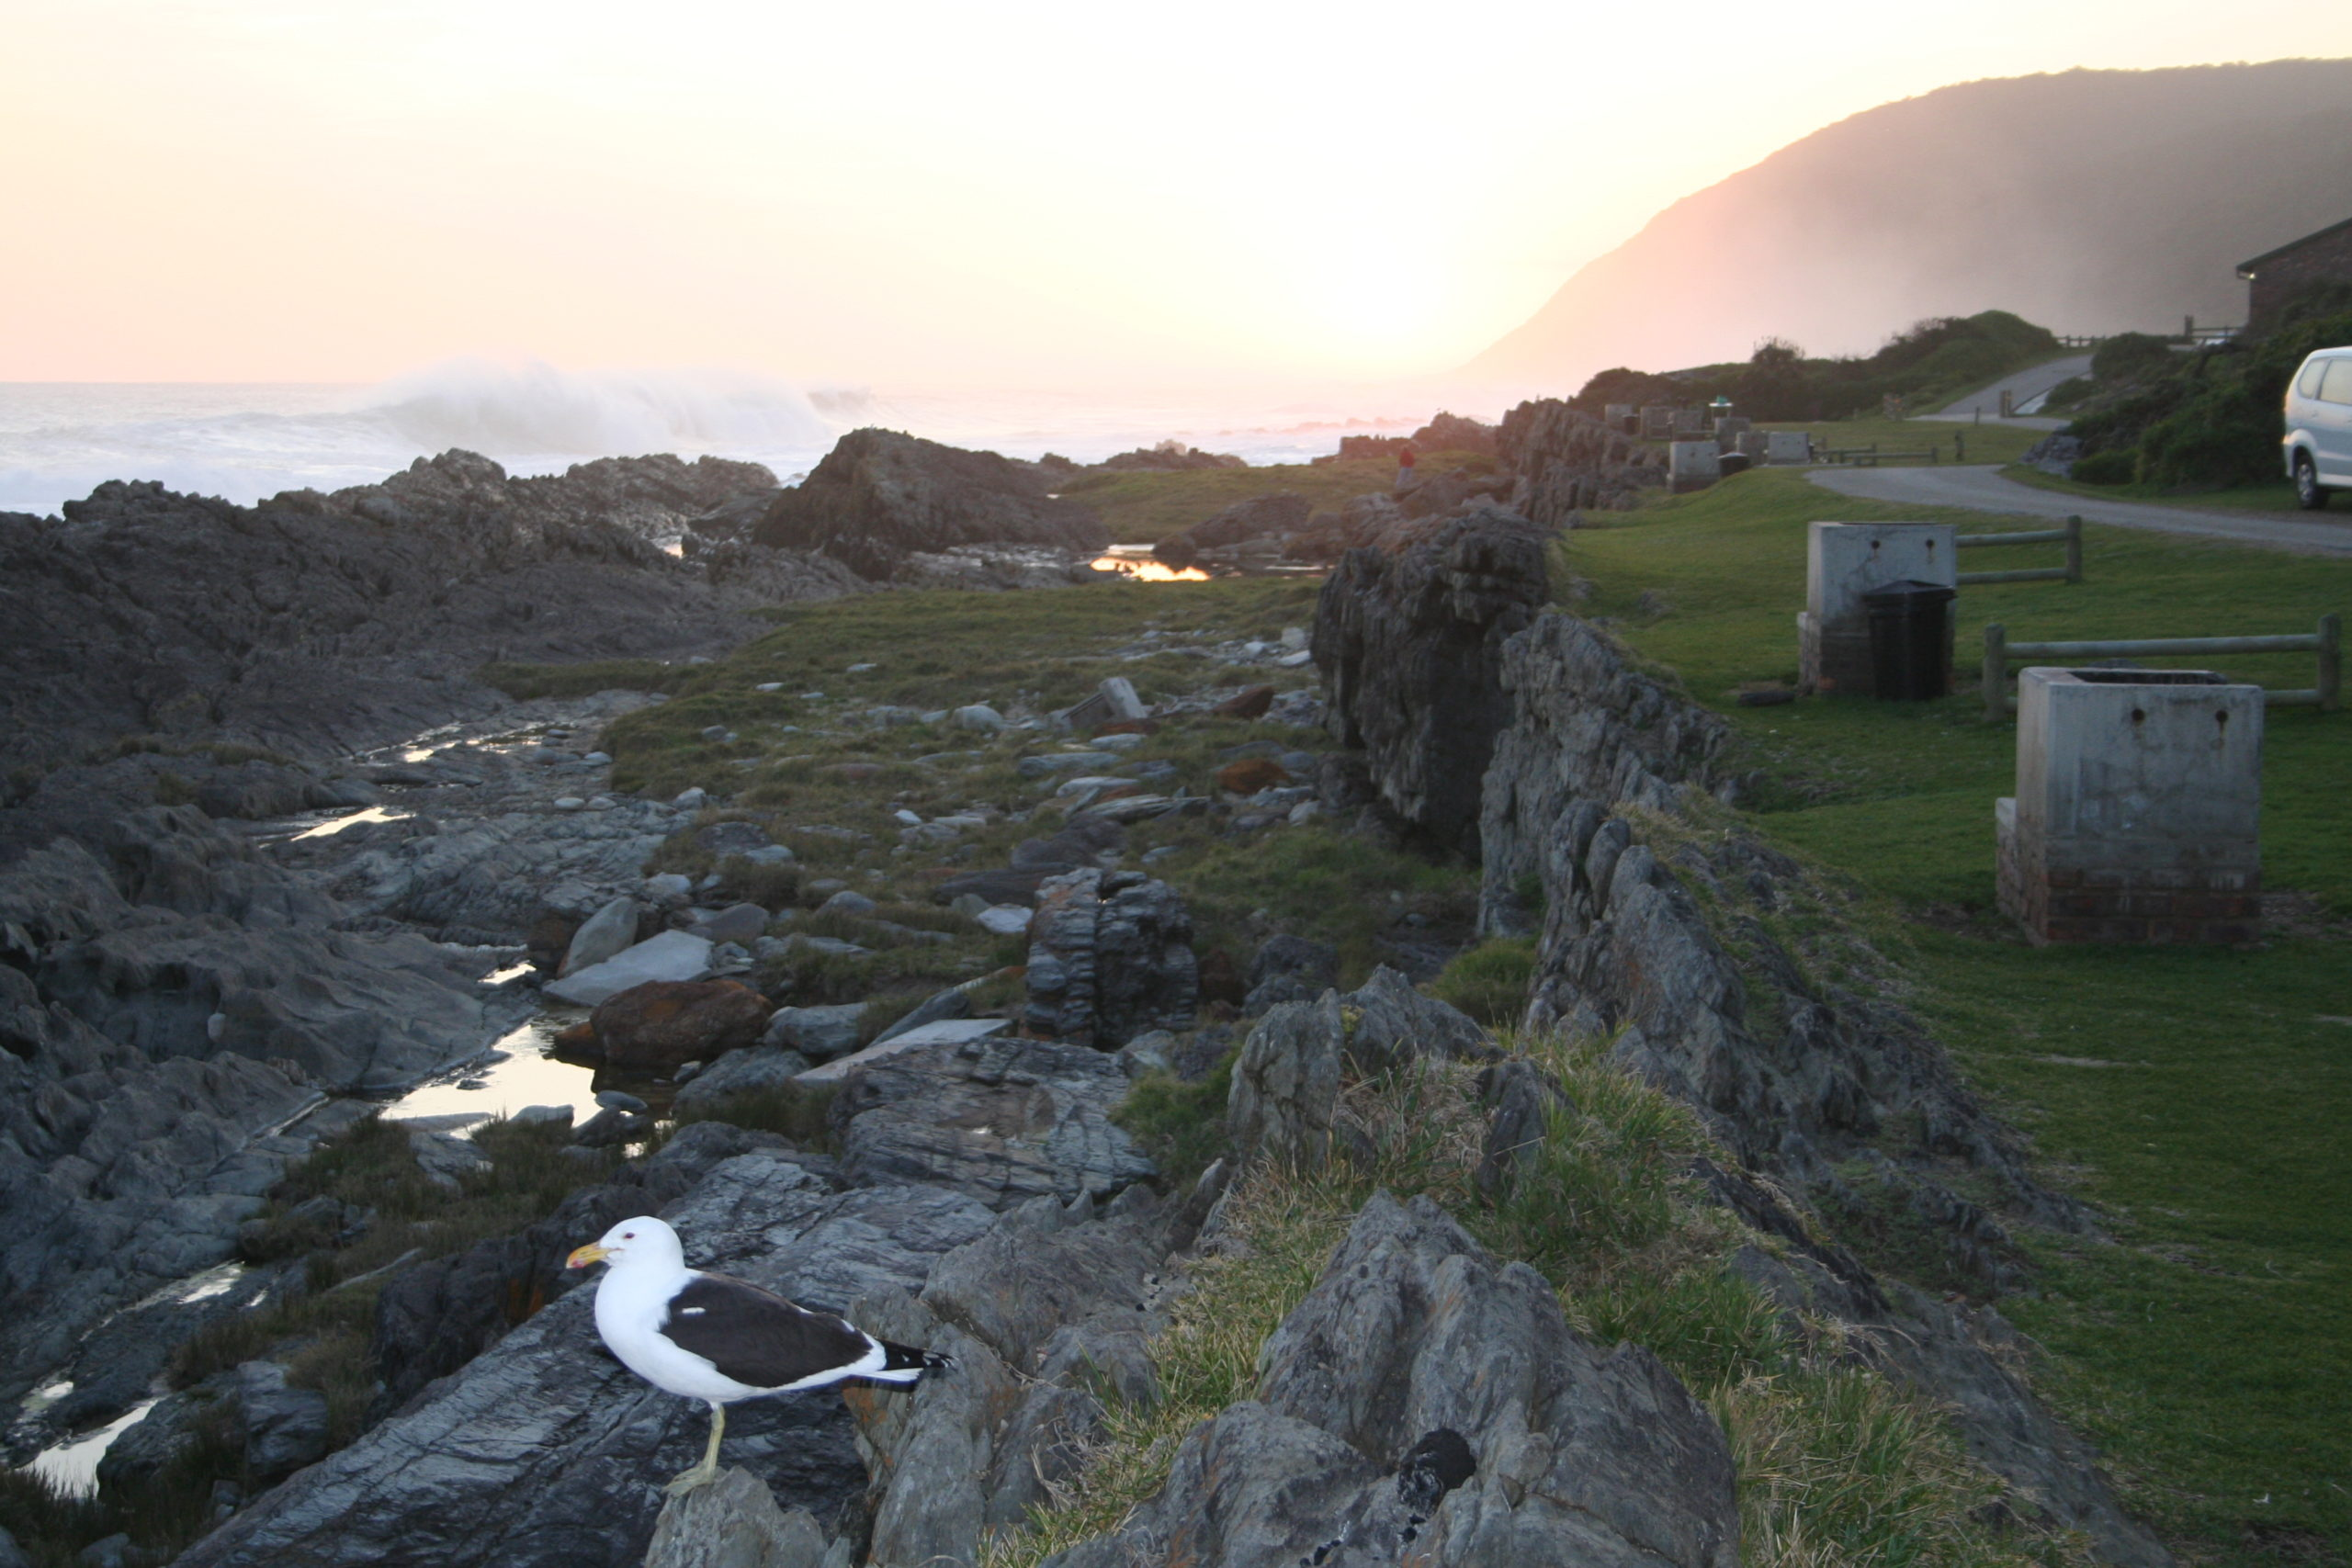 Camping site next to ocean with bird